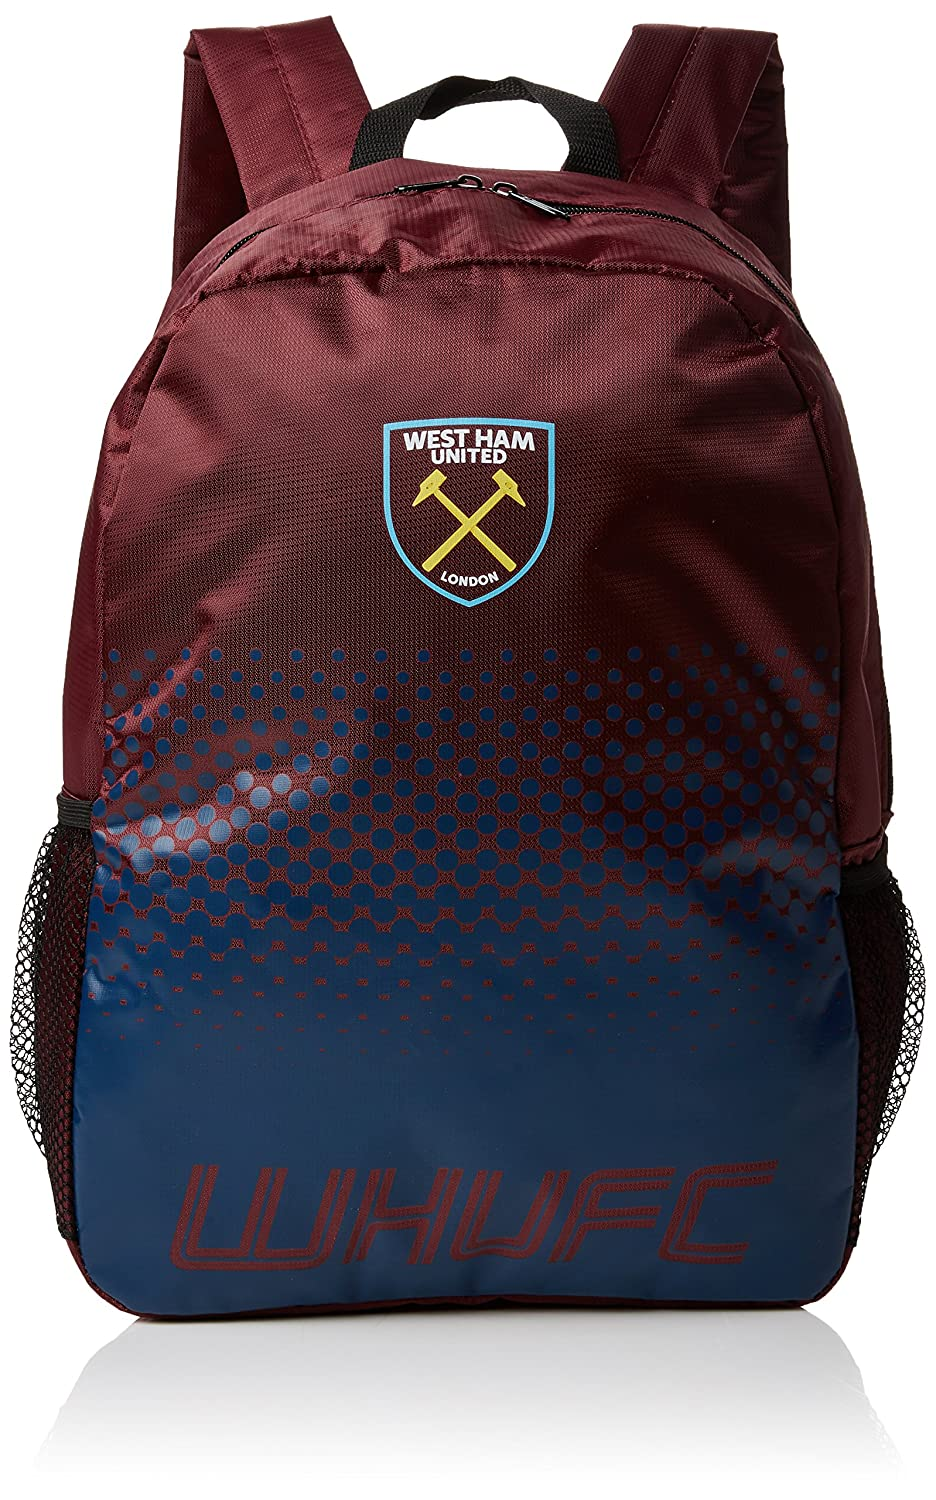 ba77f3a9a0bd West Ham United FC Fade Design Football Crest Backpack Football Souvenirs  UTSG10145 1